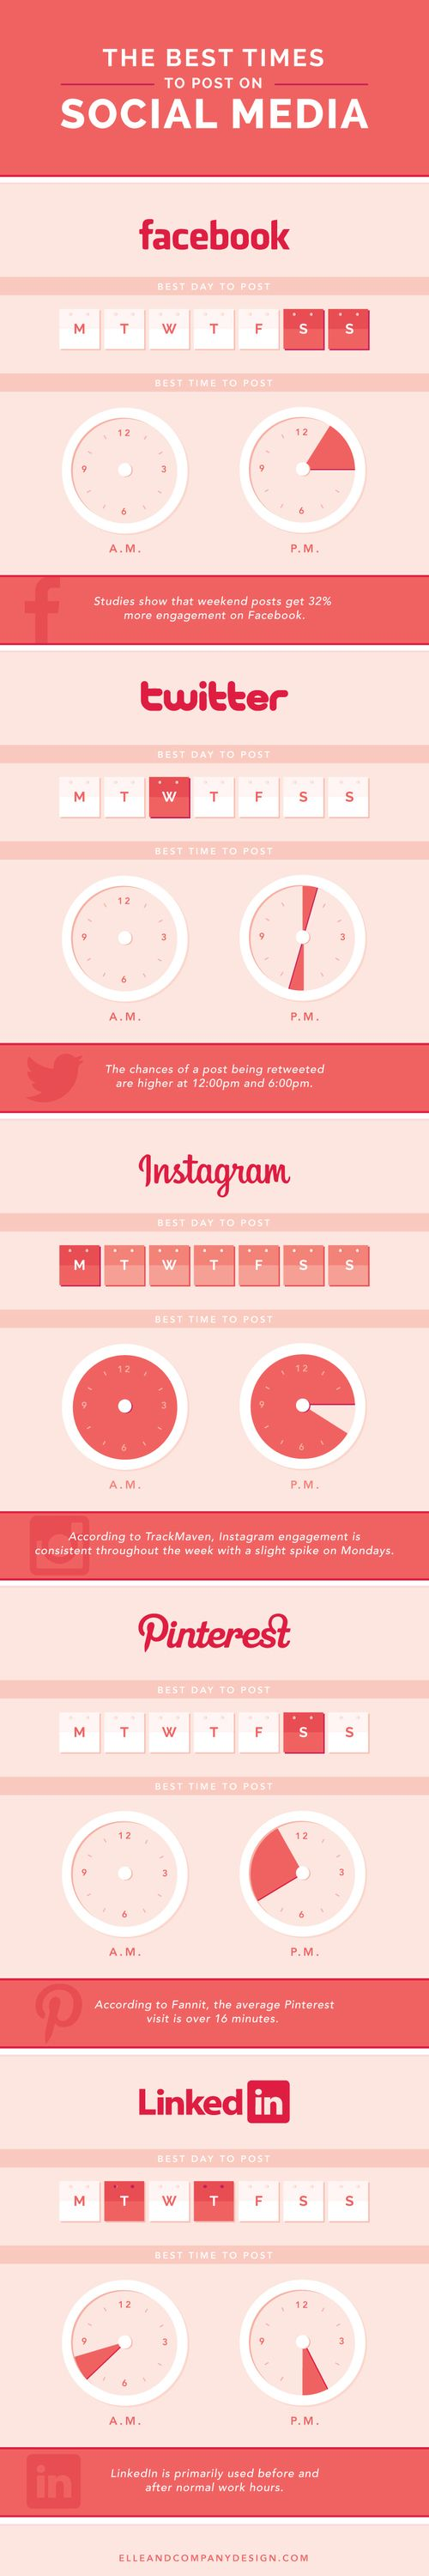 The Best Times to Post to Social Media